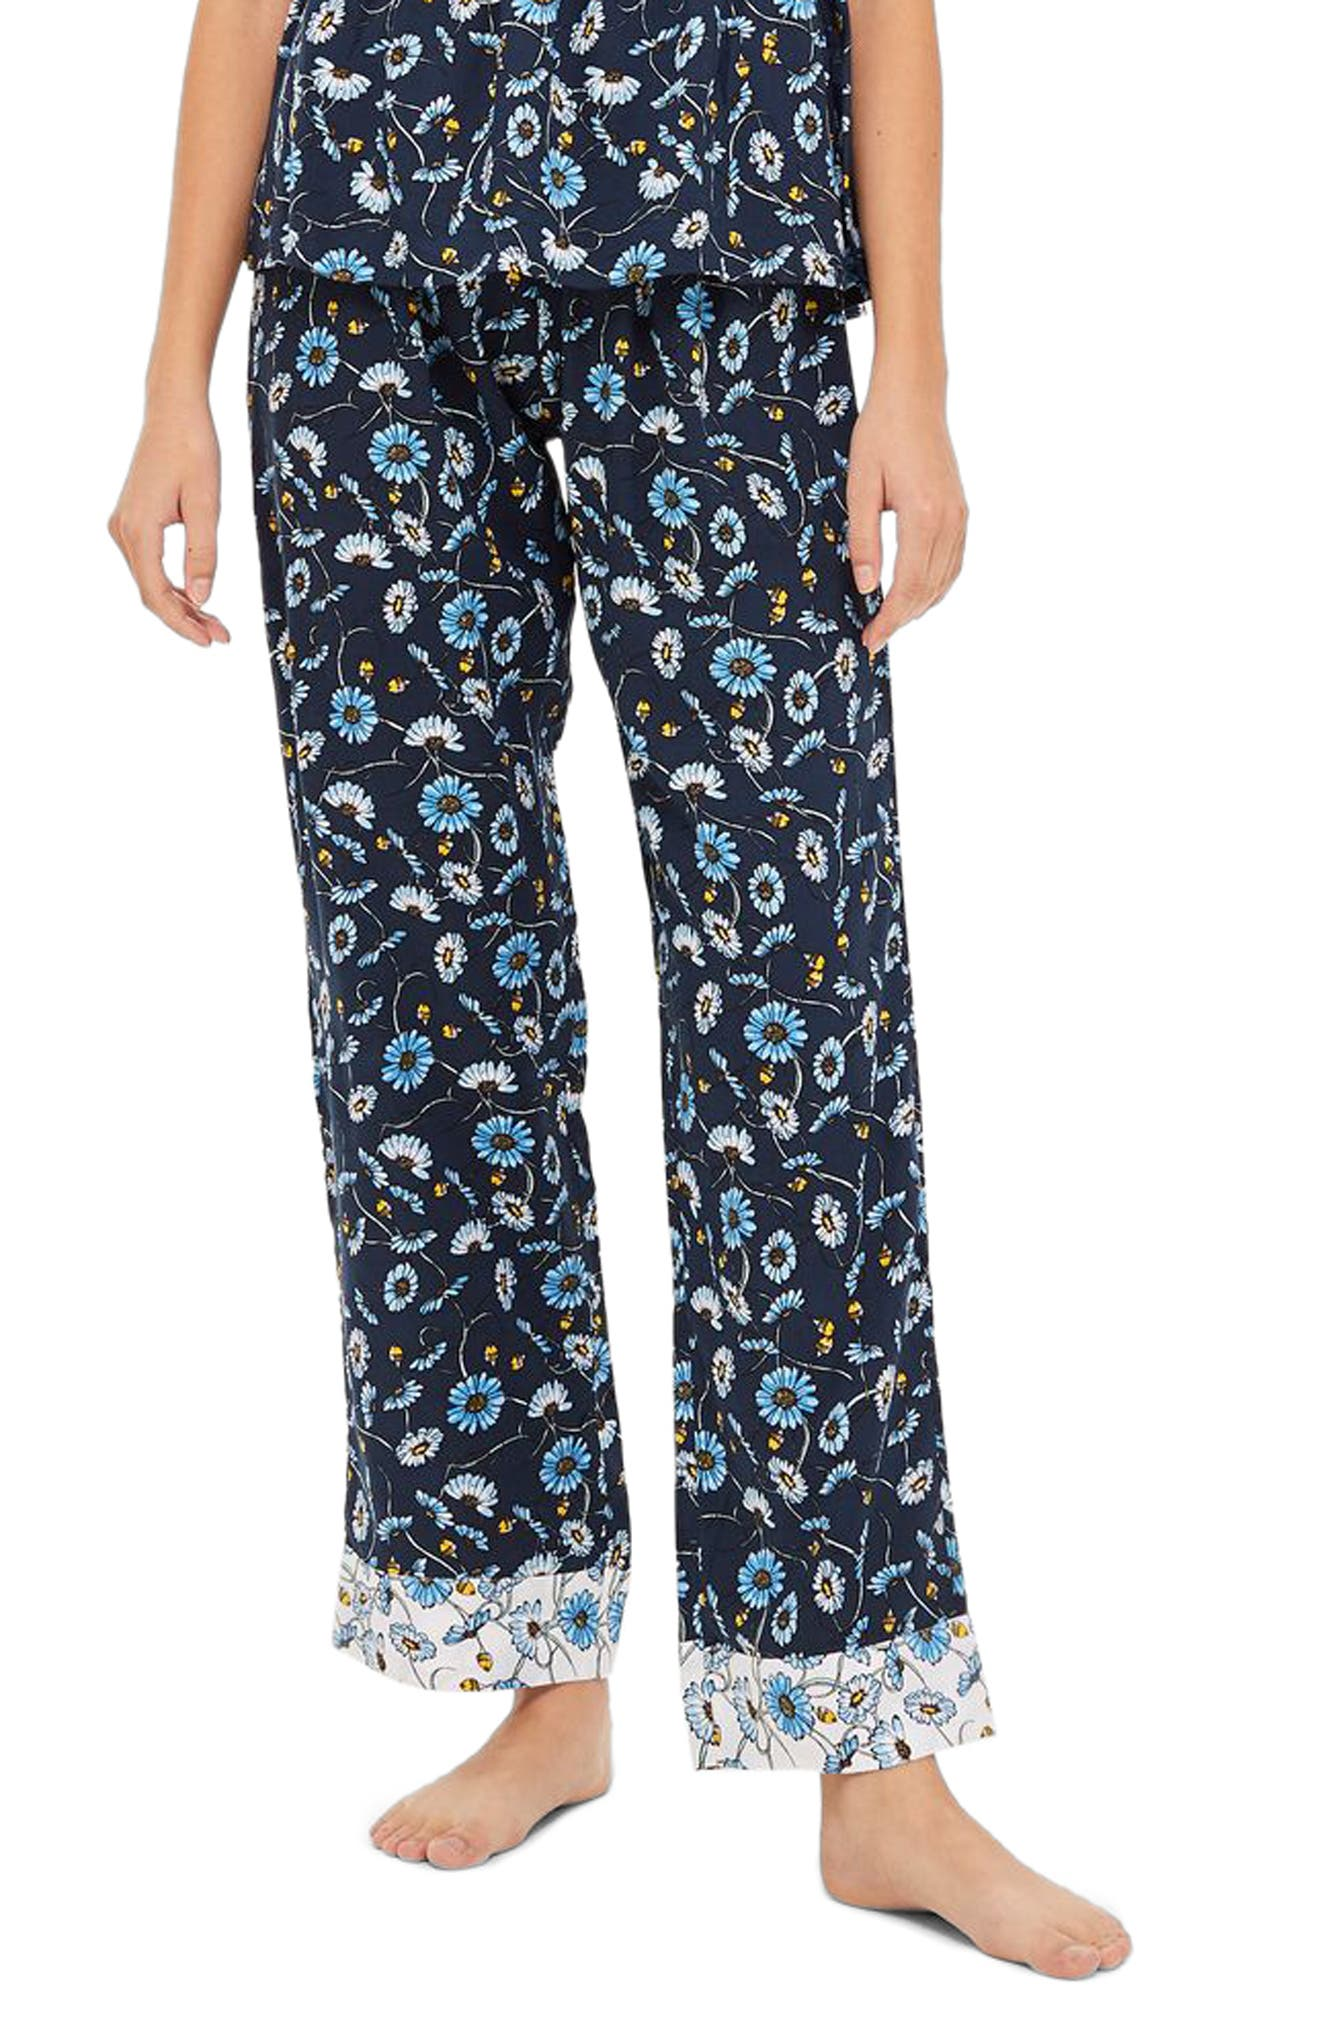 Floral Sleep Trouser Pajama Pants,                             Main thumbnail 1, color,                             NAVY MULTI